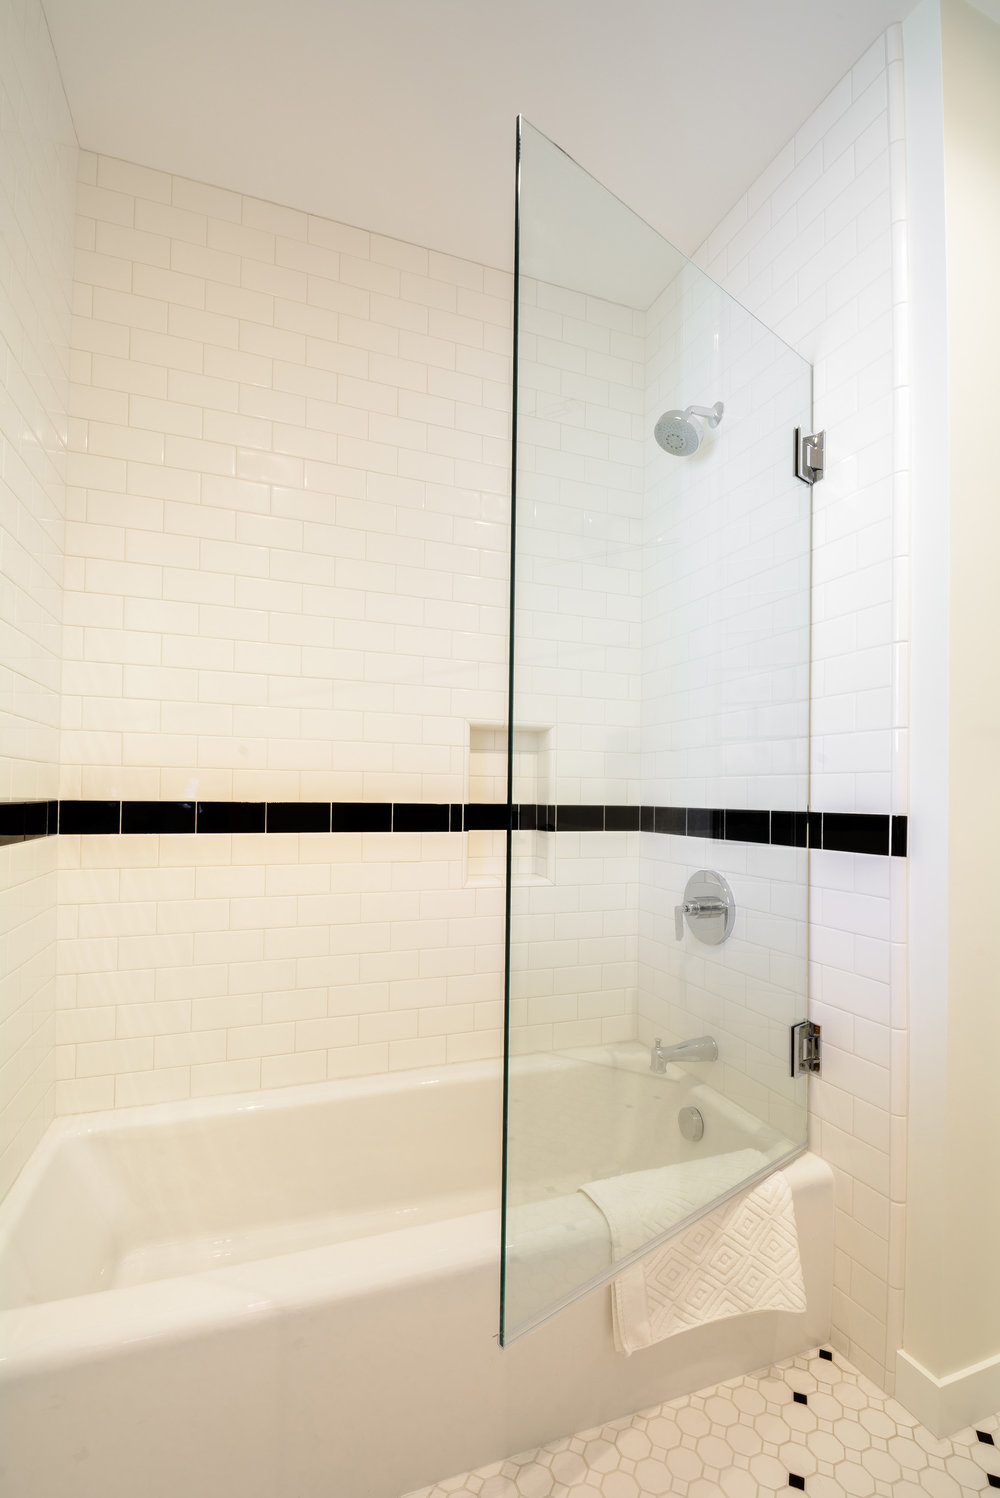 Swing out glass door for the tub enclosure